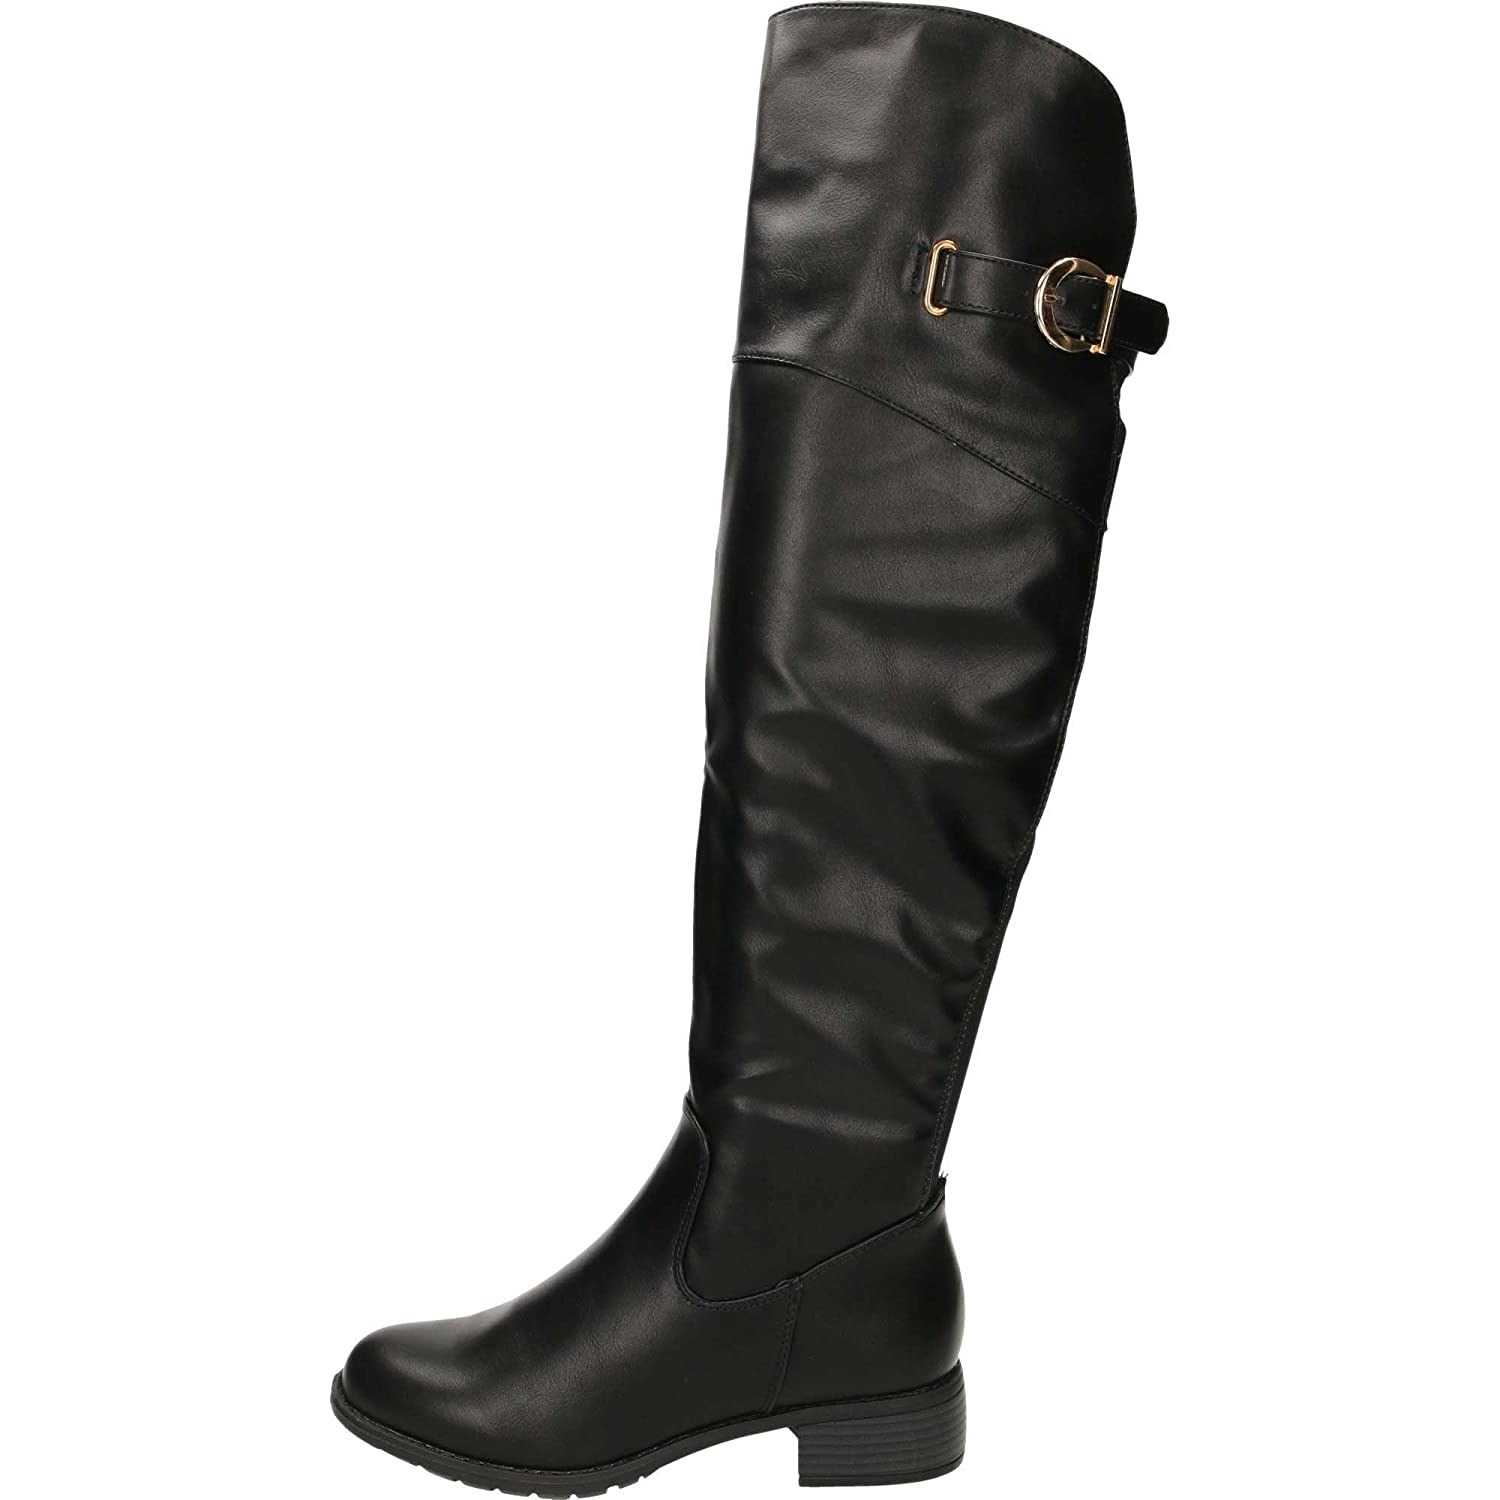 89657246dedfe Krush Knee High Tall Flat Stretchy Boots Black: Amazon.co.uk: Shoes & Bags